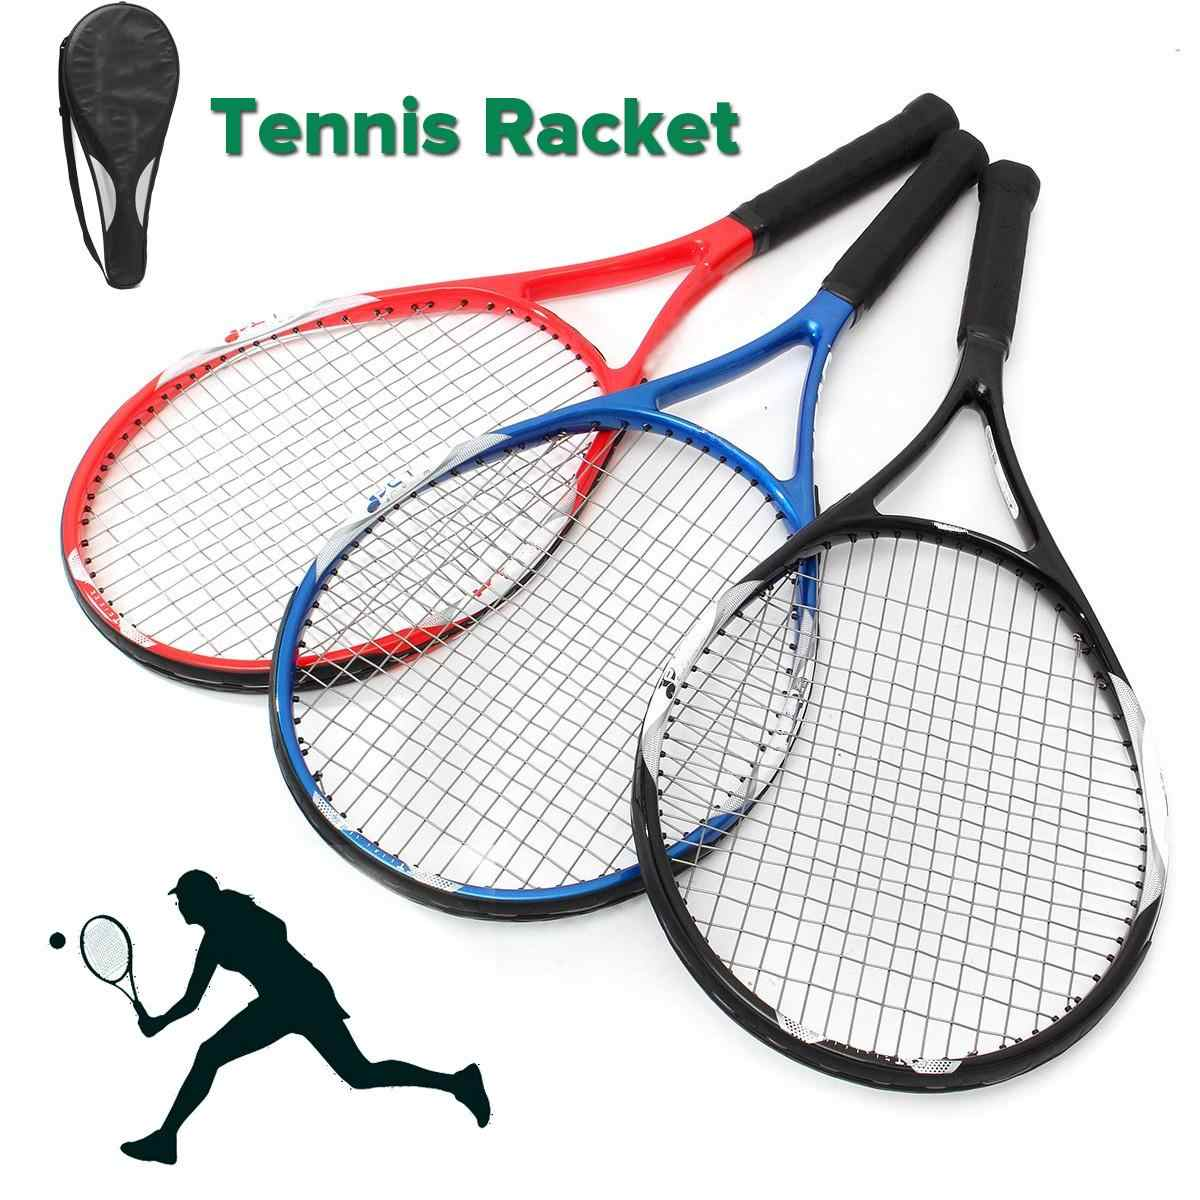 27inch Tennis Racket Racquet Carbon Fiber Equipped Anti-skid Handle Grip With Bag for Amateur junior